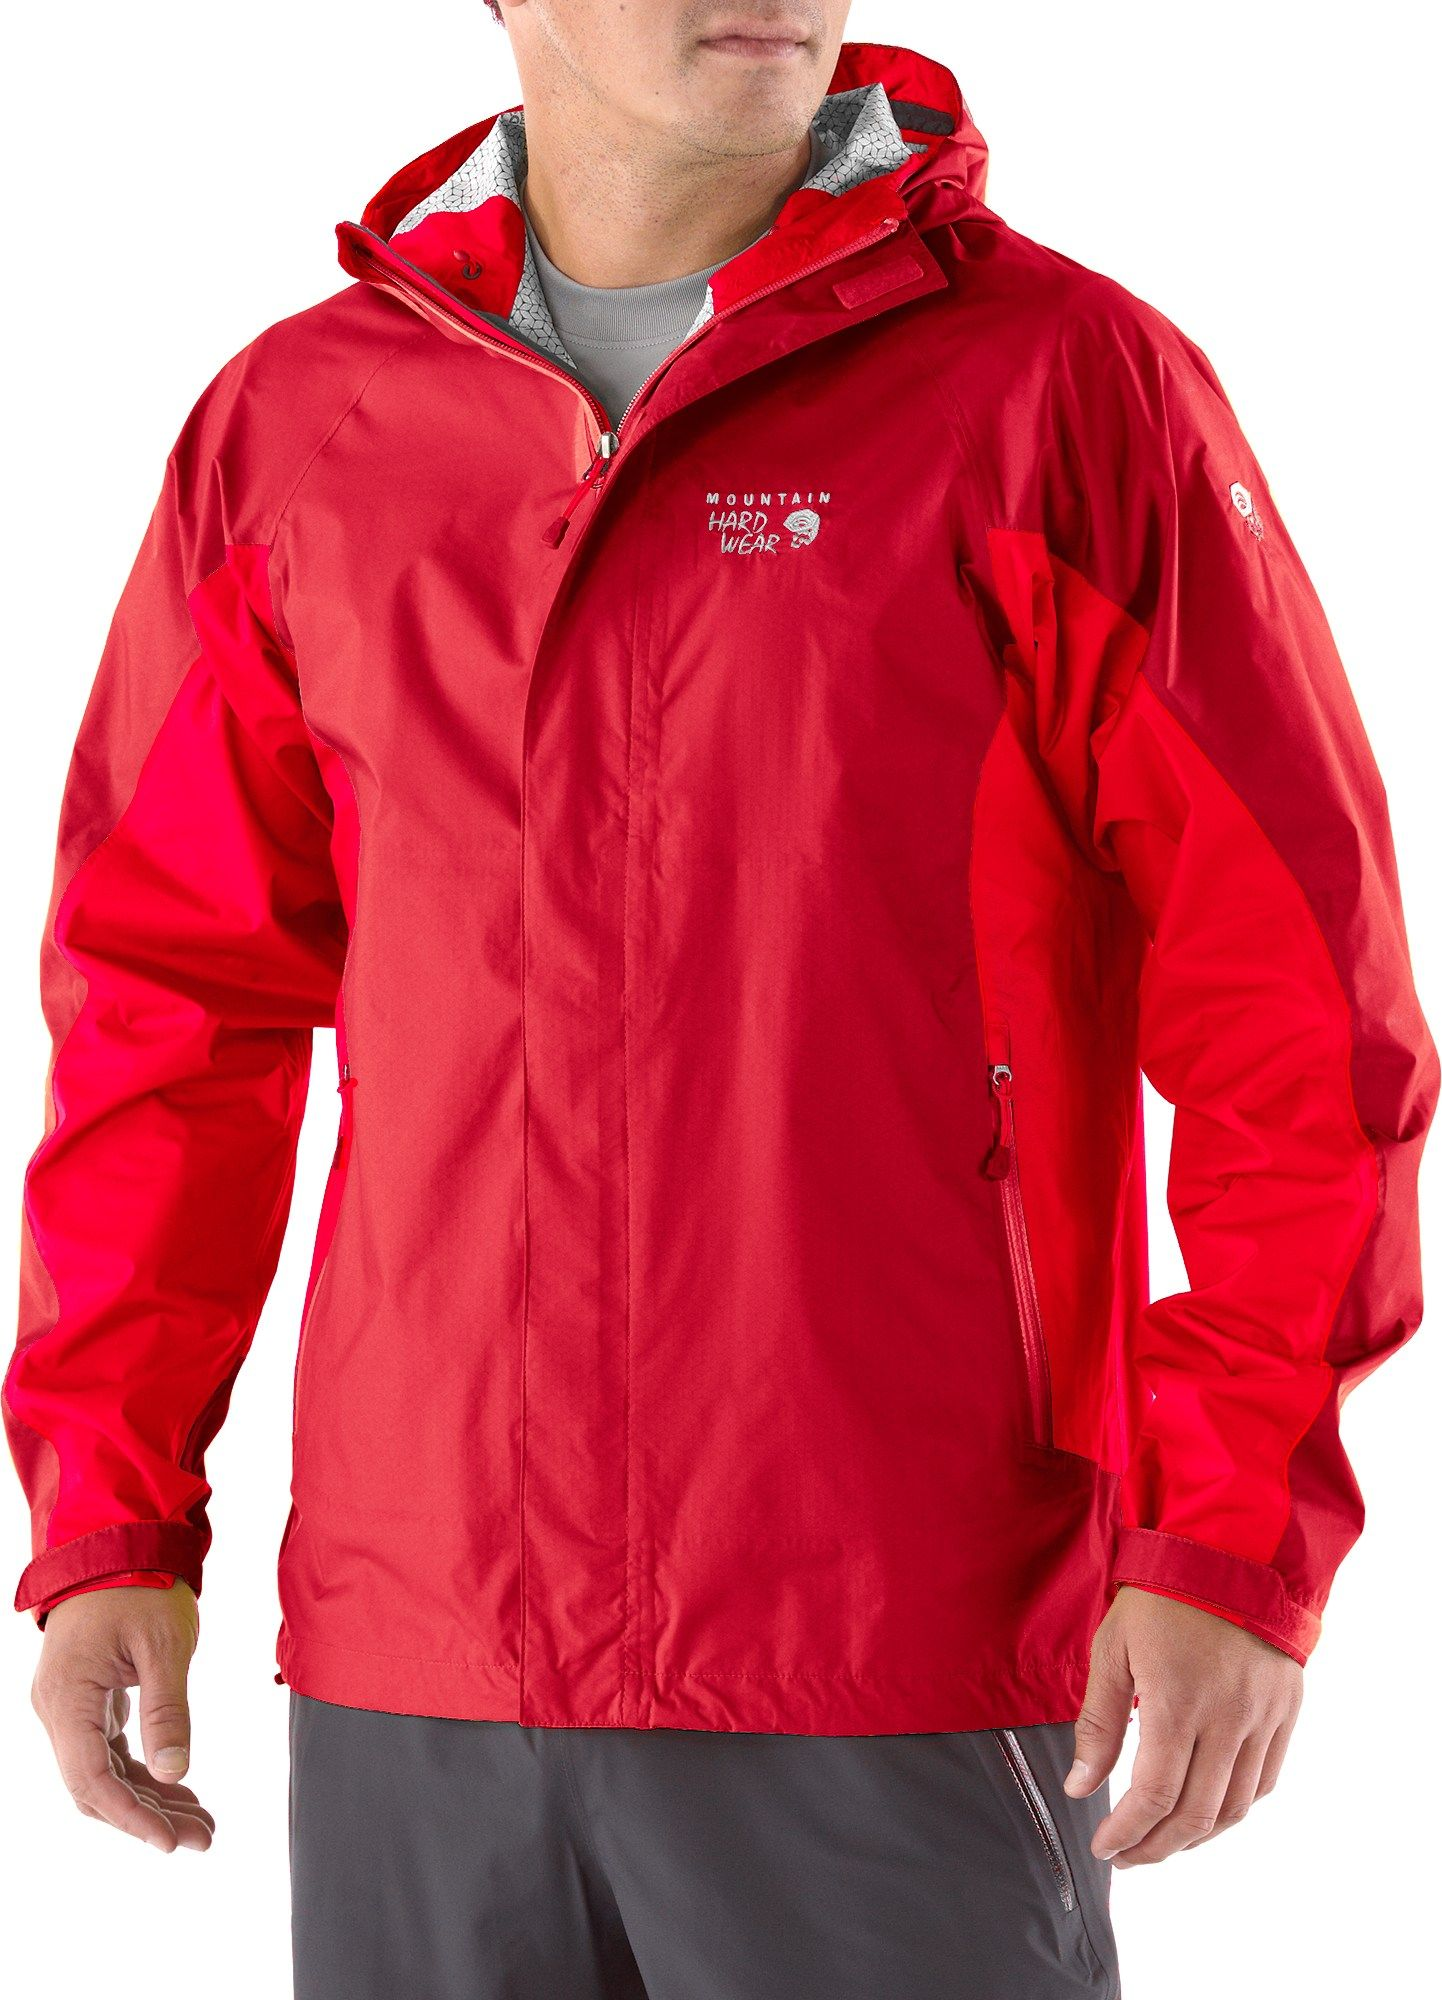 The Mountain Hardwear Sirocco jacket provides lightweight 0c2e44b5a30f4